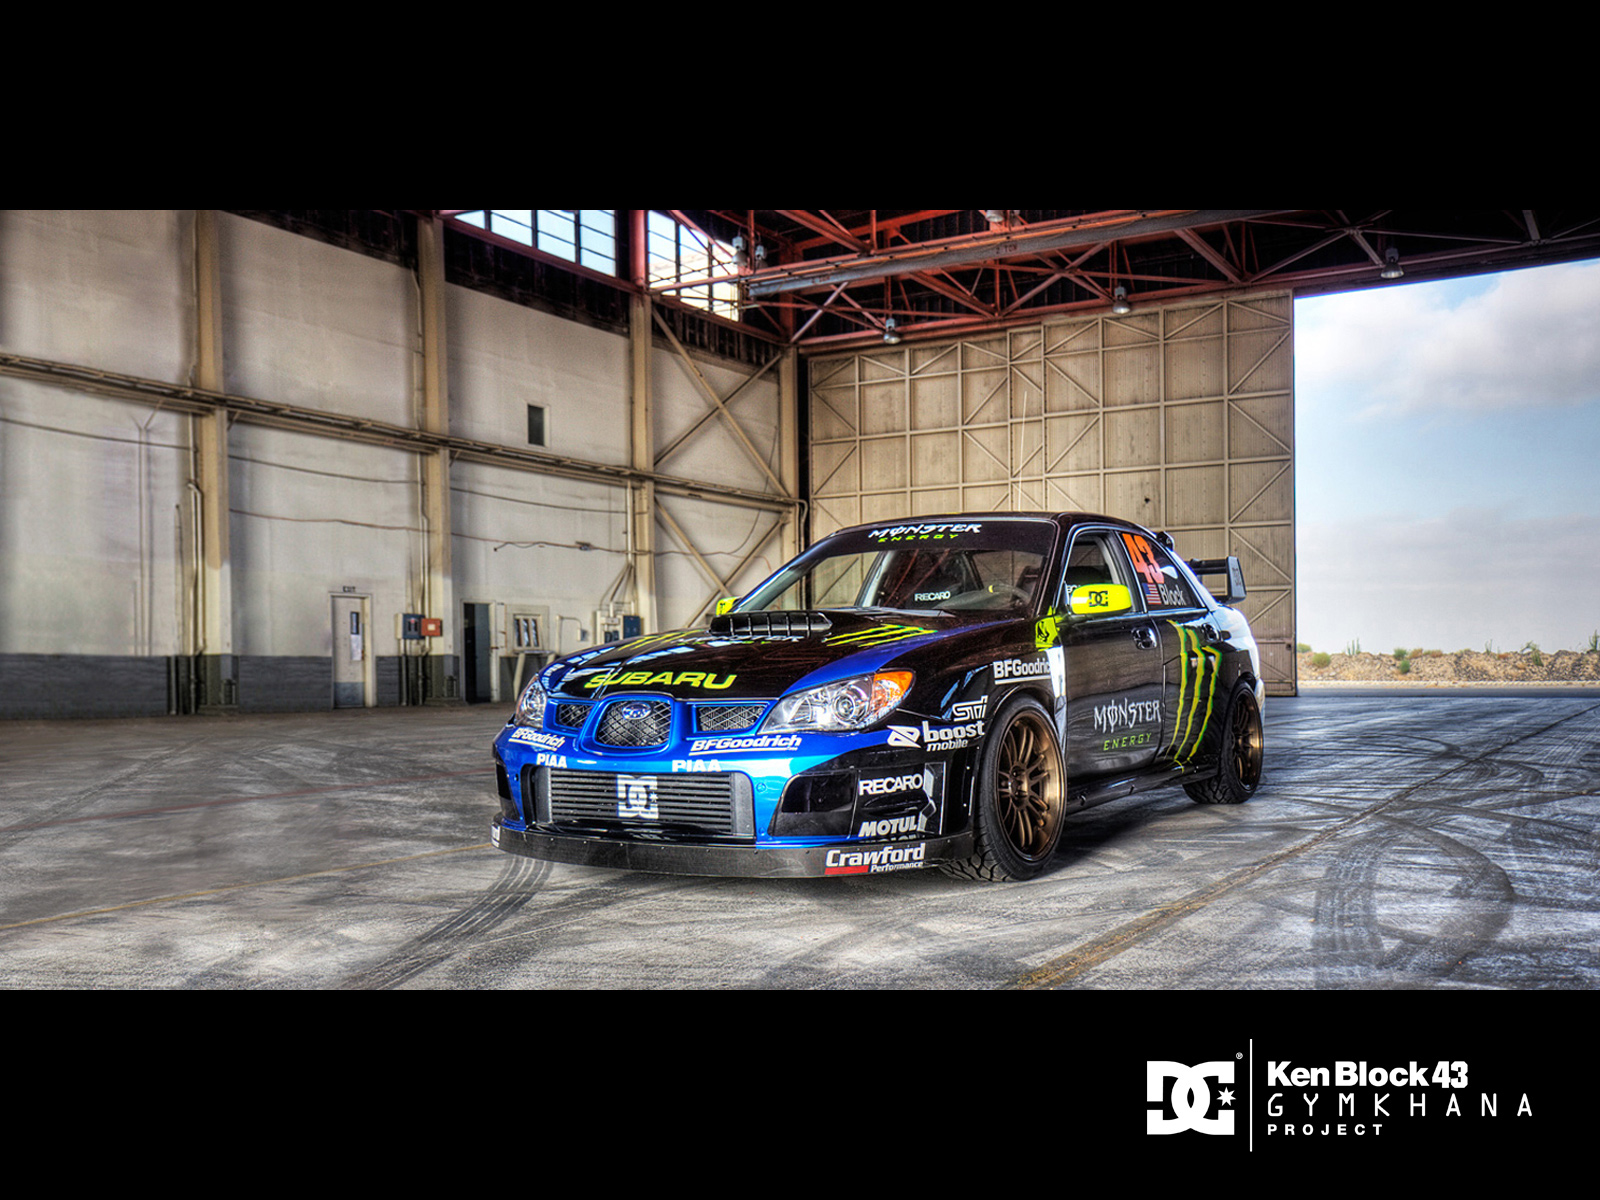 Ken Block Gymkhana Project,